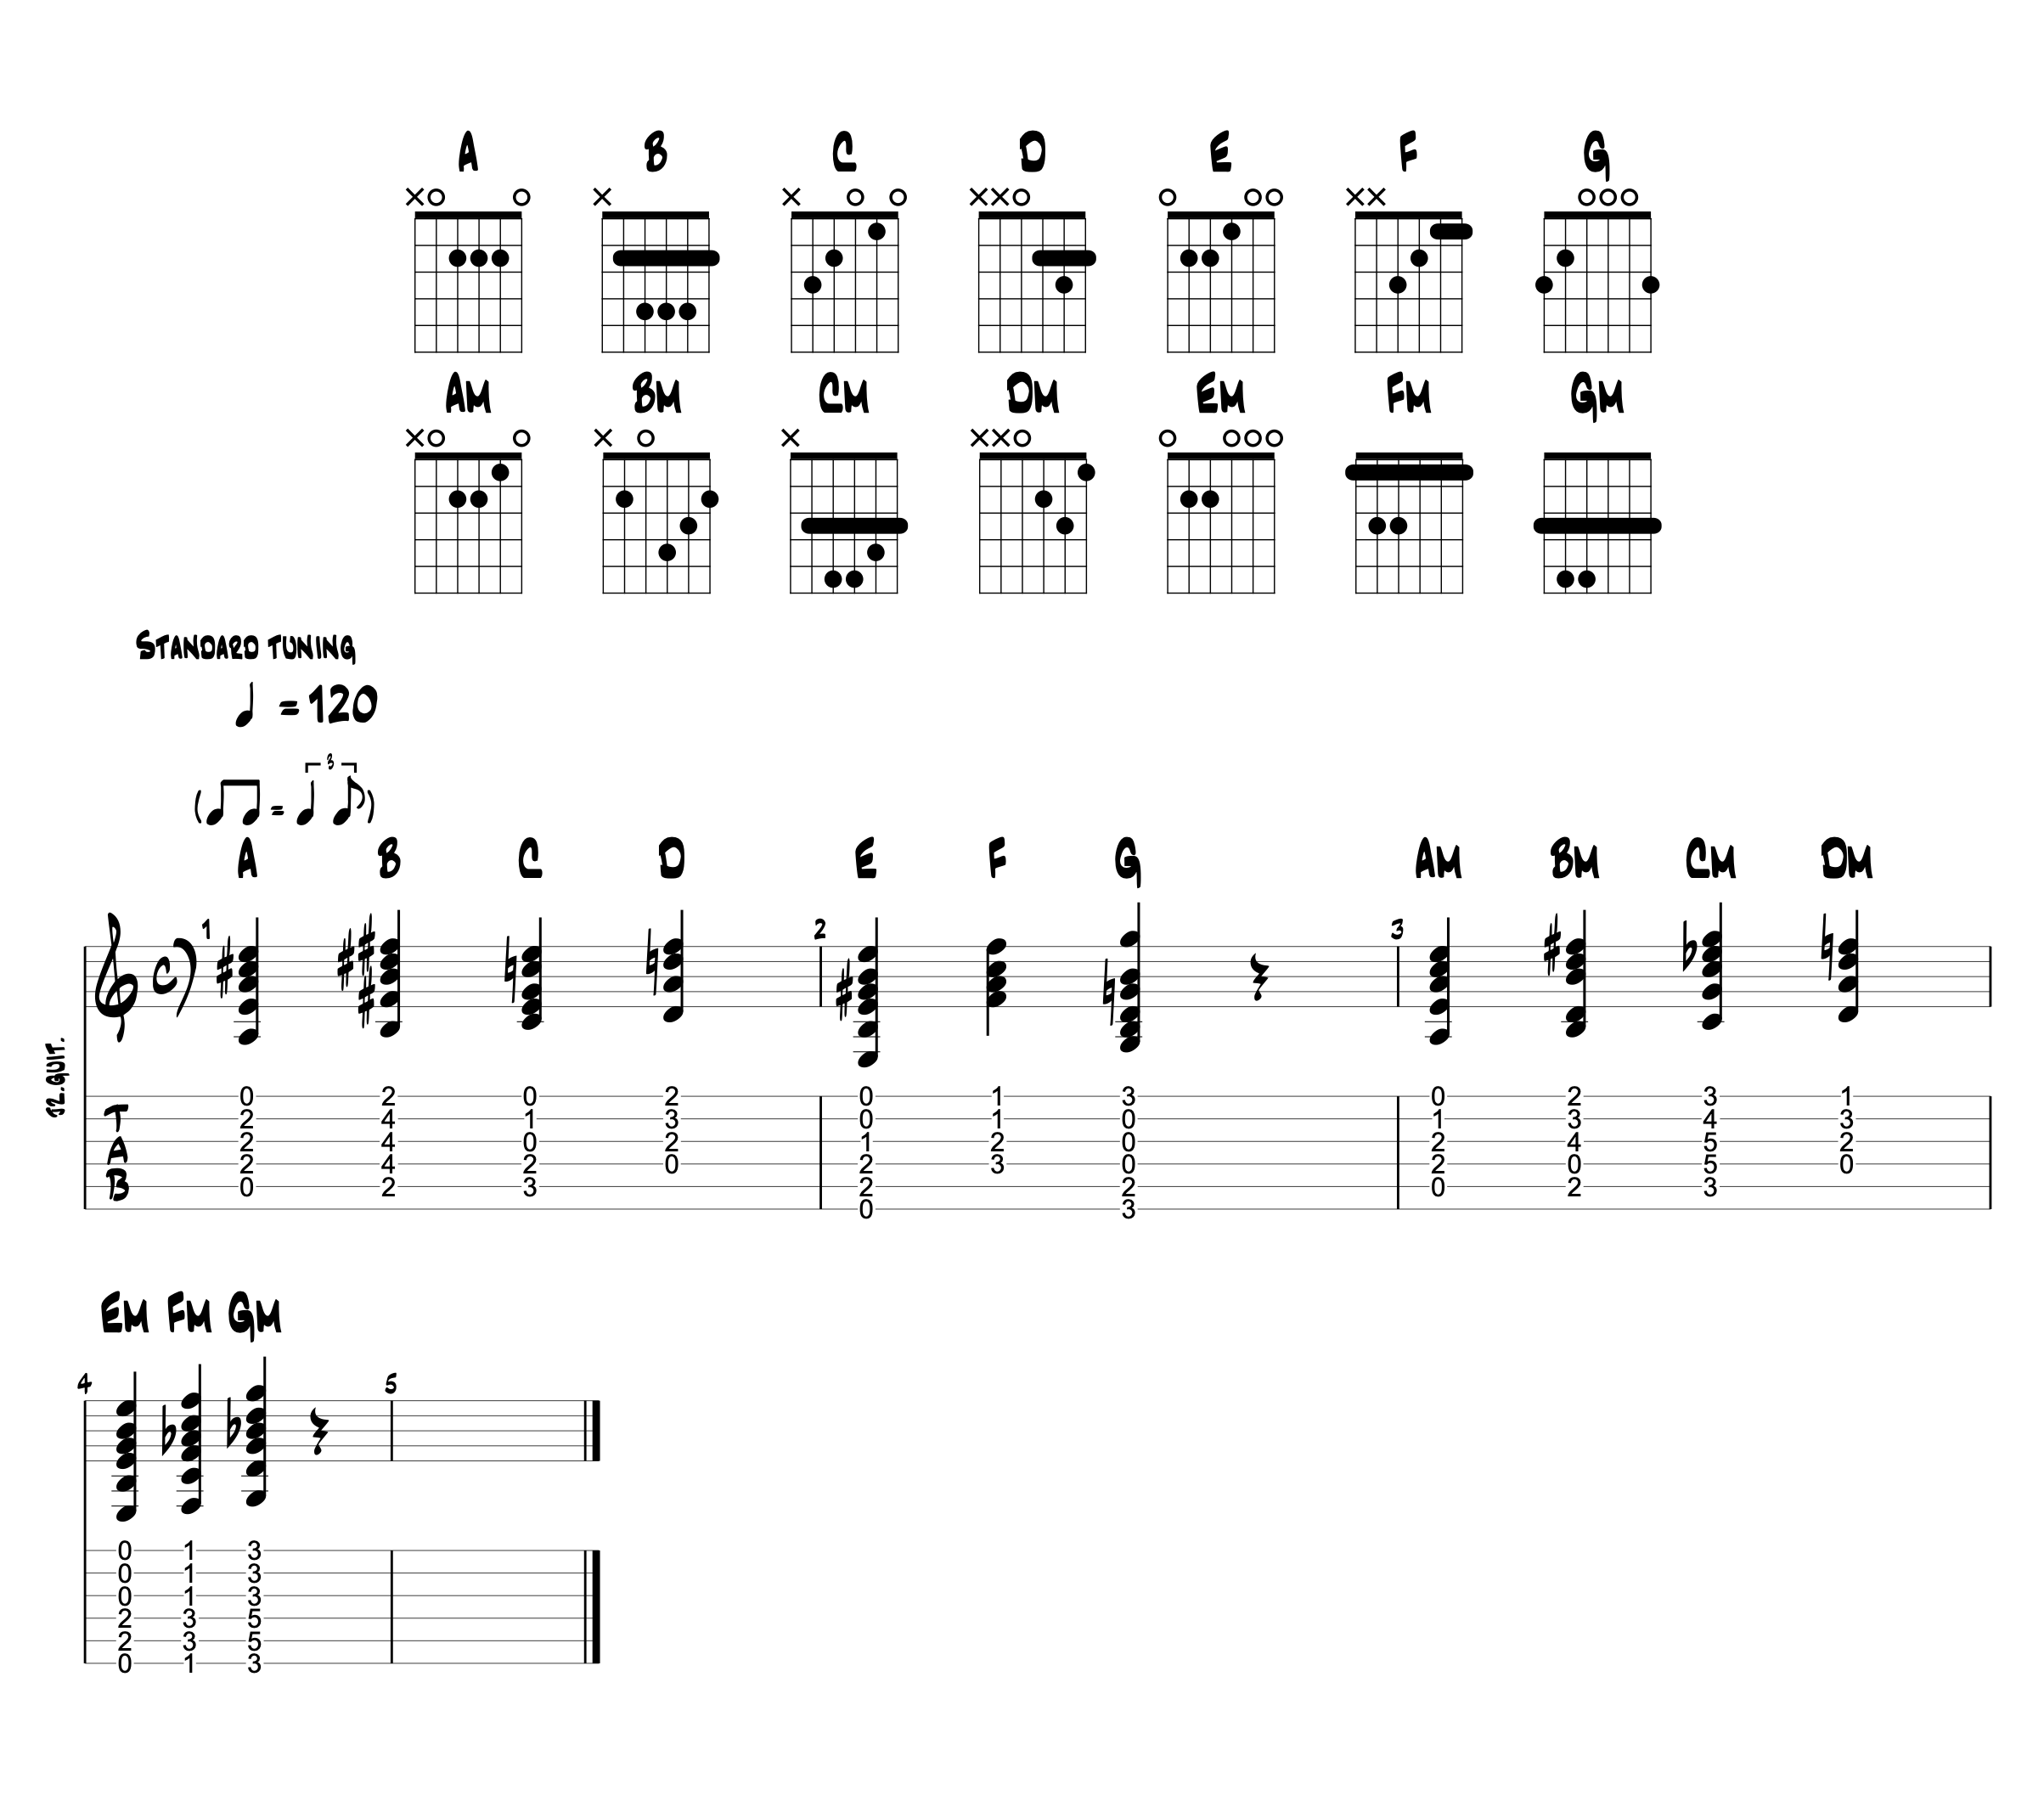 learning-open-chords-major-minor.png